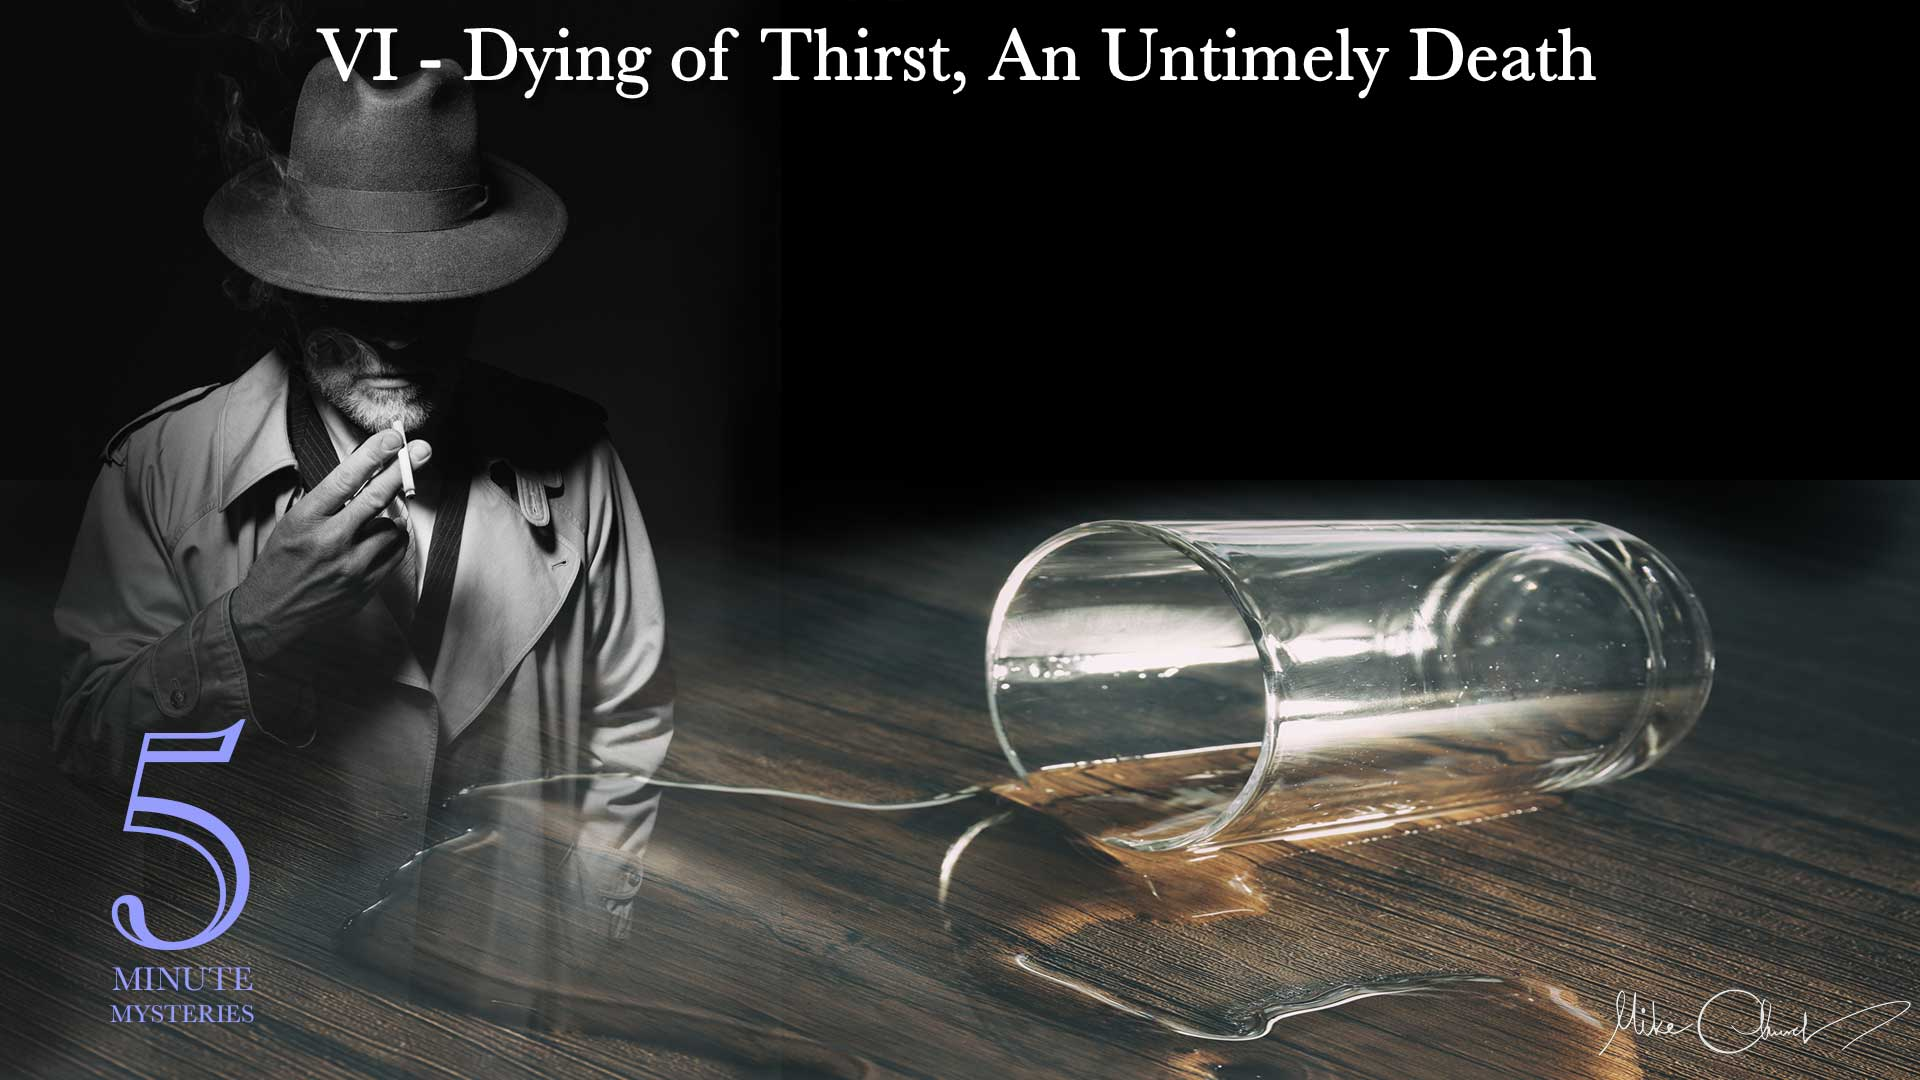 5 Minute Mysteries Episode VI - Dying of Thirst, An Untimely Death